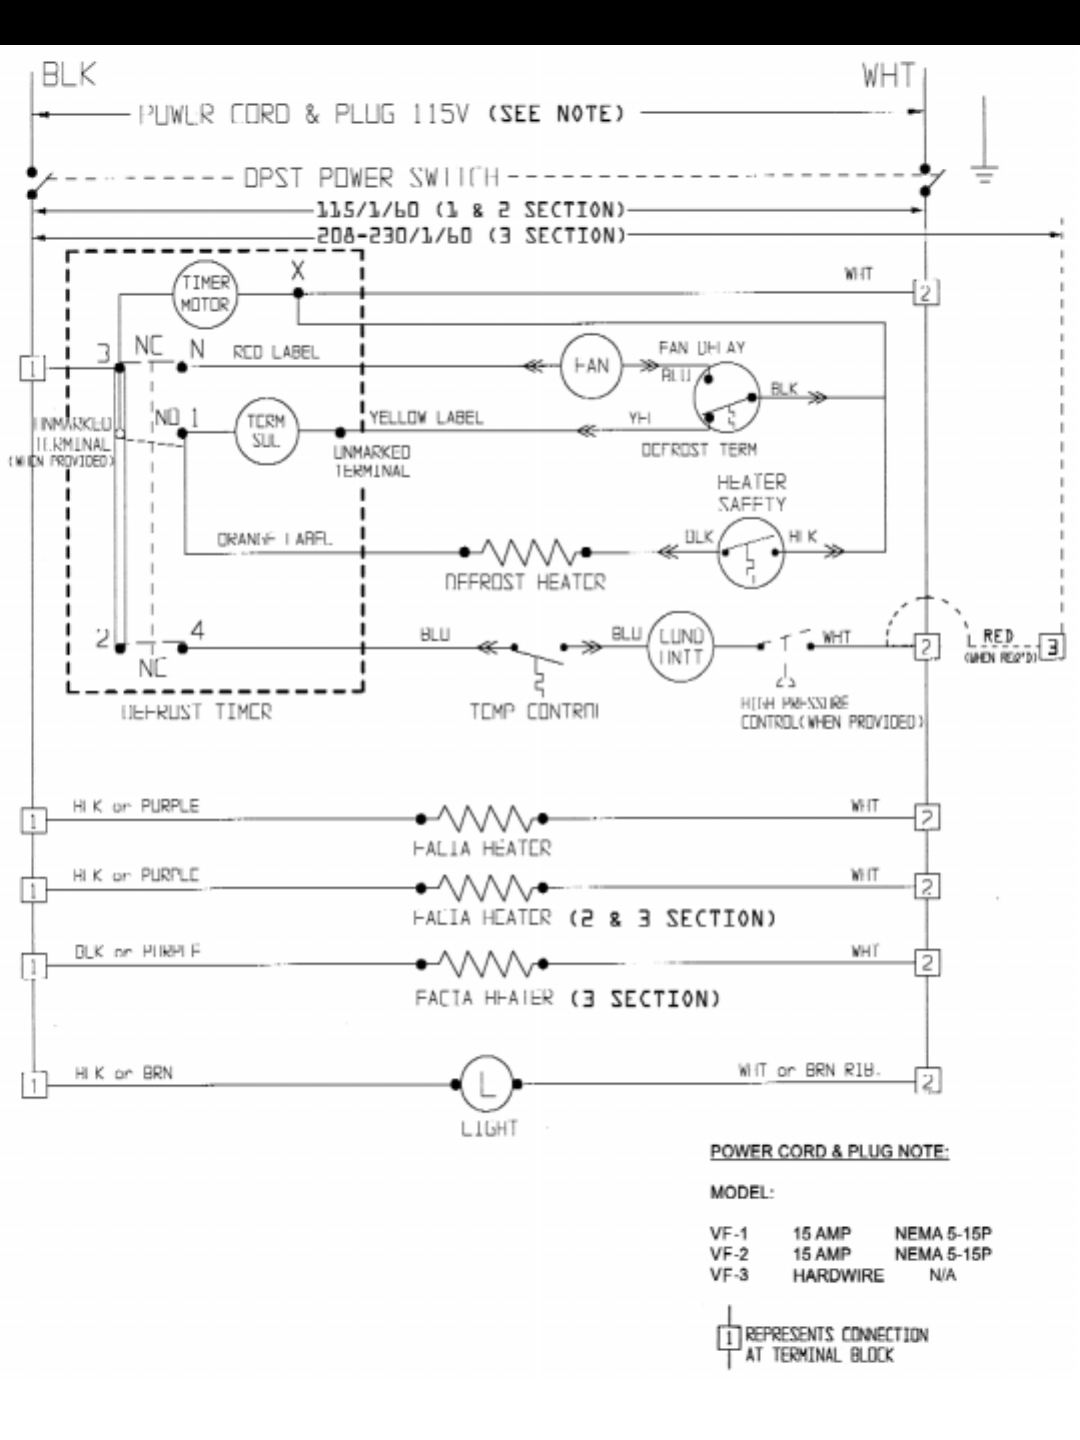 hight resolution of page of victory refrigeration refrigerator vr user guide 1 2 3 section zer wiring diagram